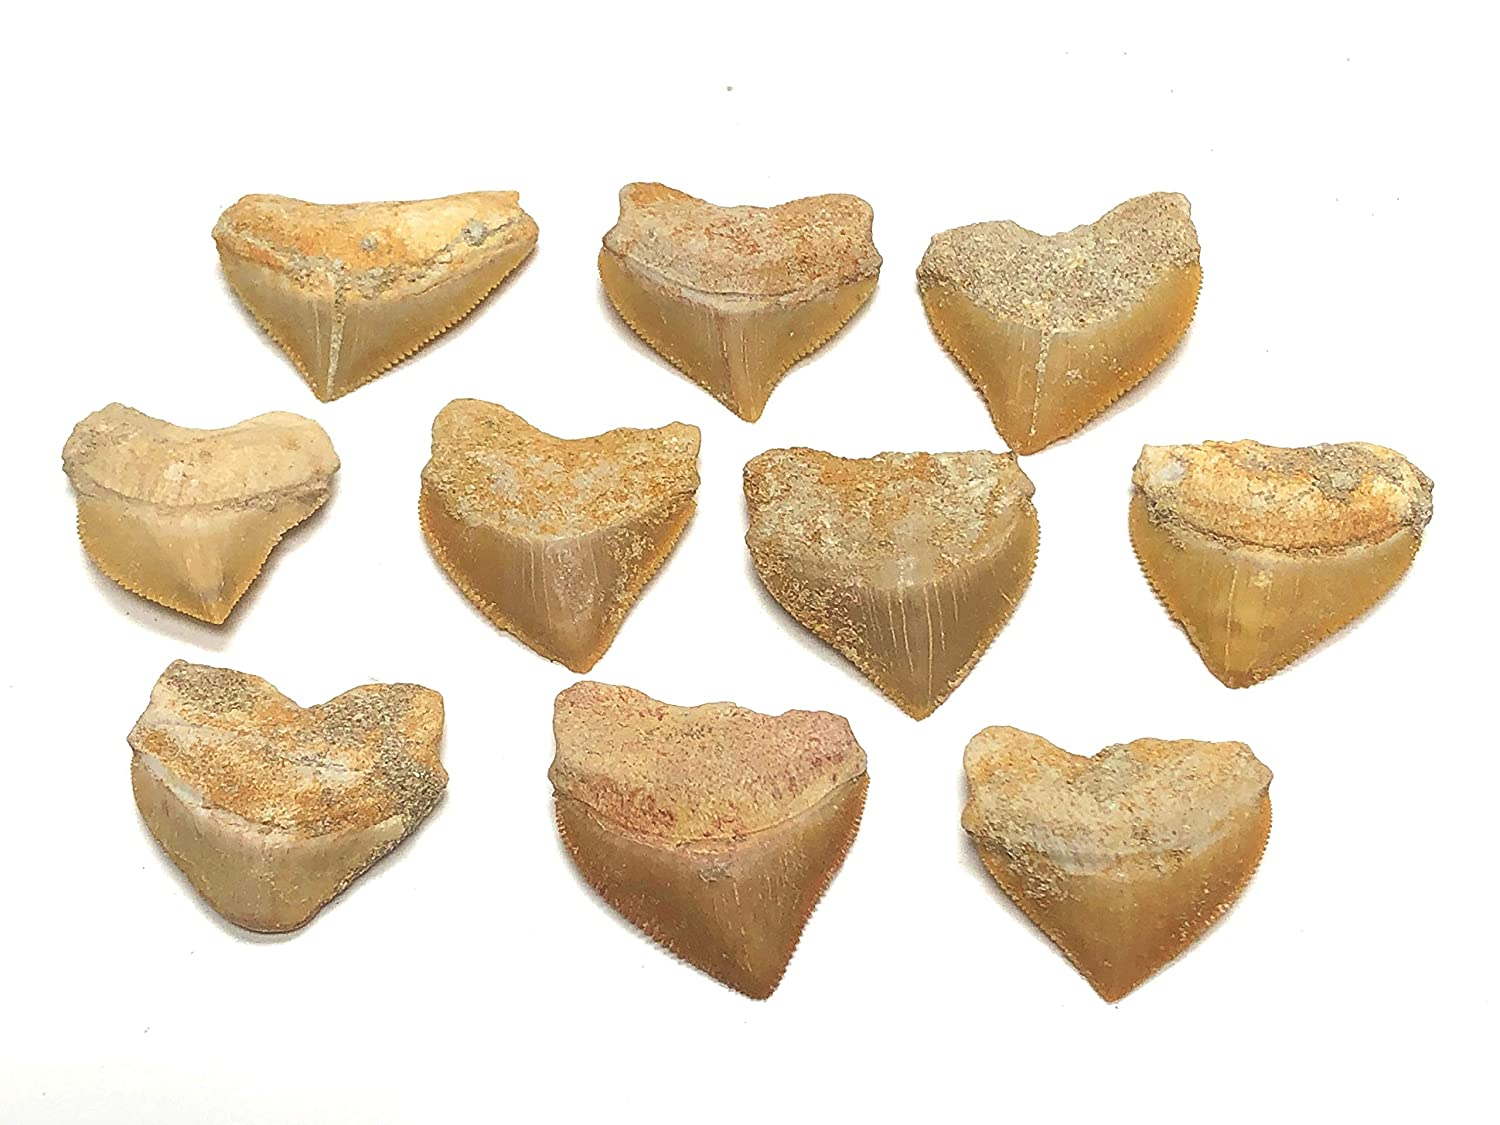 "Zentron Crystal Collection Corax Shark Teeth Squalicorax Fossil Tooth 1"" (5)"